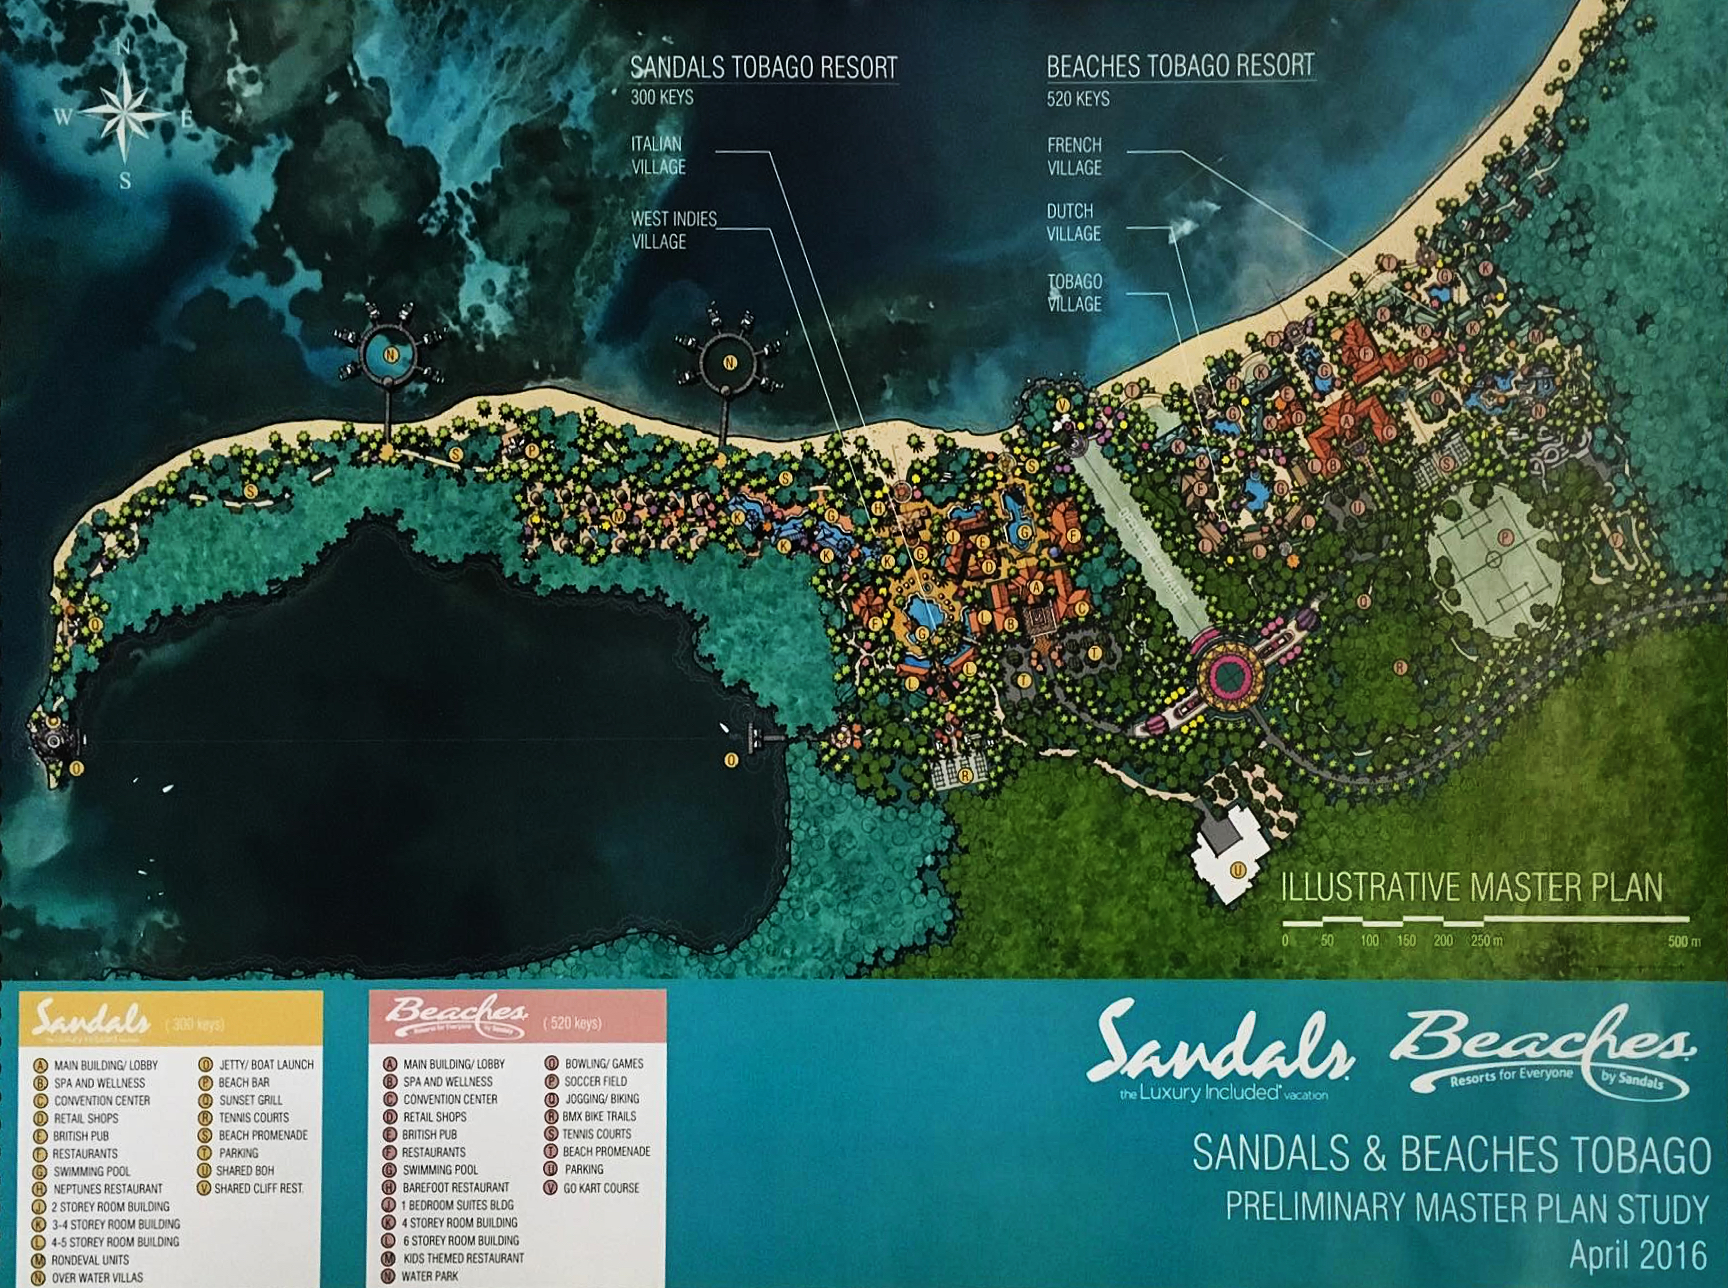 The Sandals Saga – SCRIBBLESNZ – photos, writing, recipes ... on sandals resorts, sandals caribbean vacations, sandals emerald bay, sandals royal bahamian location, sandals st. lucia, sandals antigua,